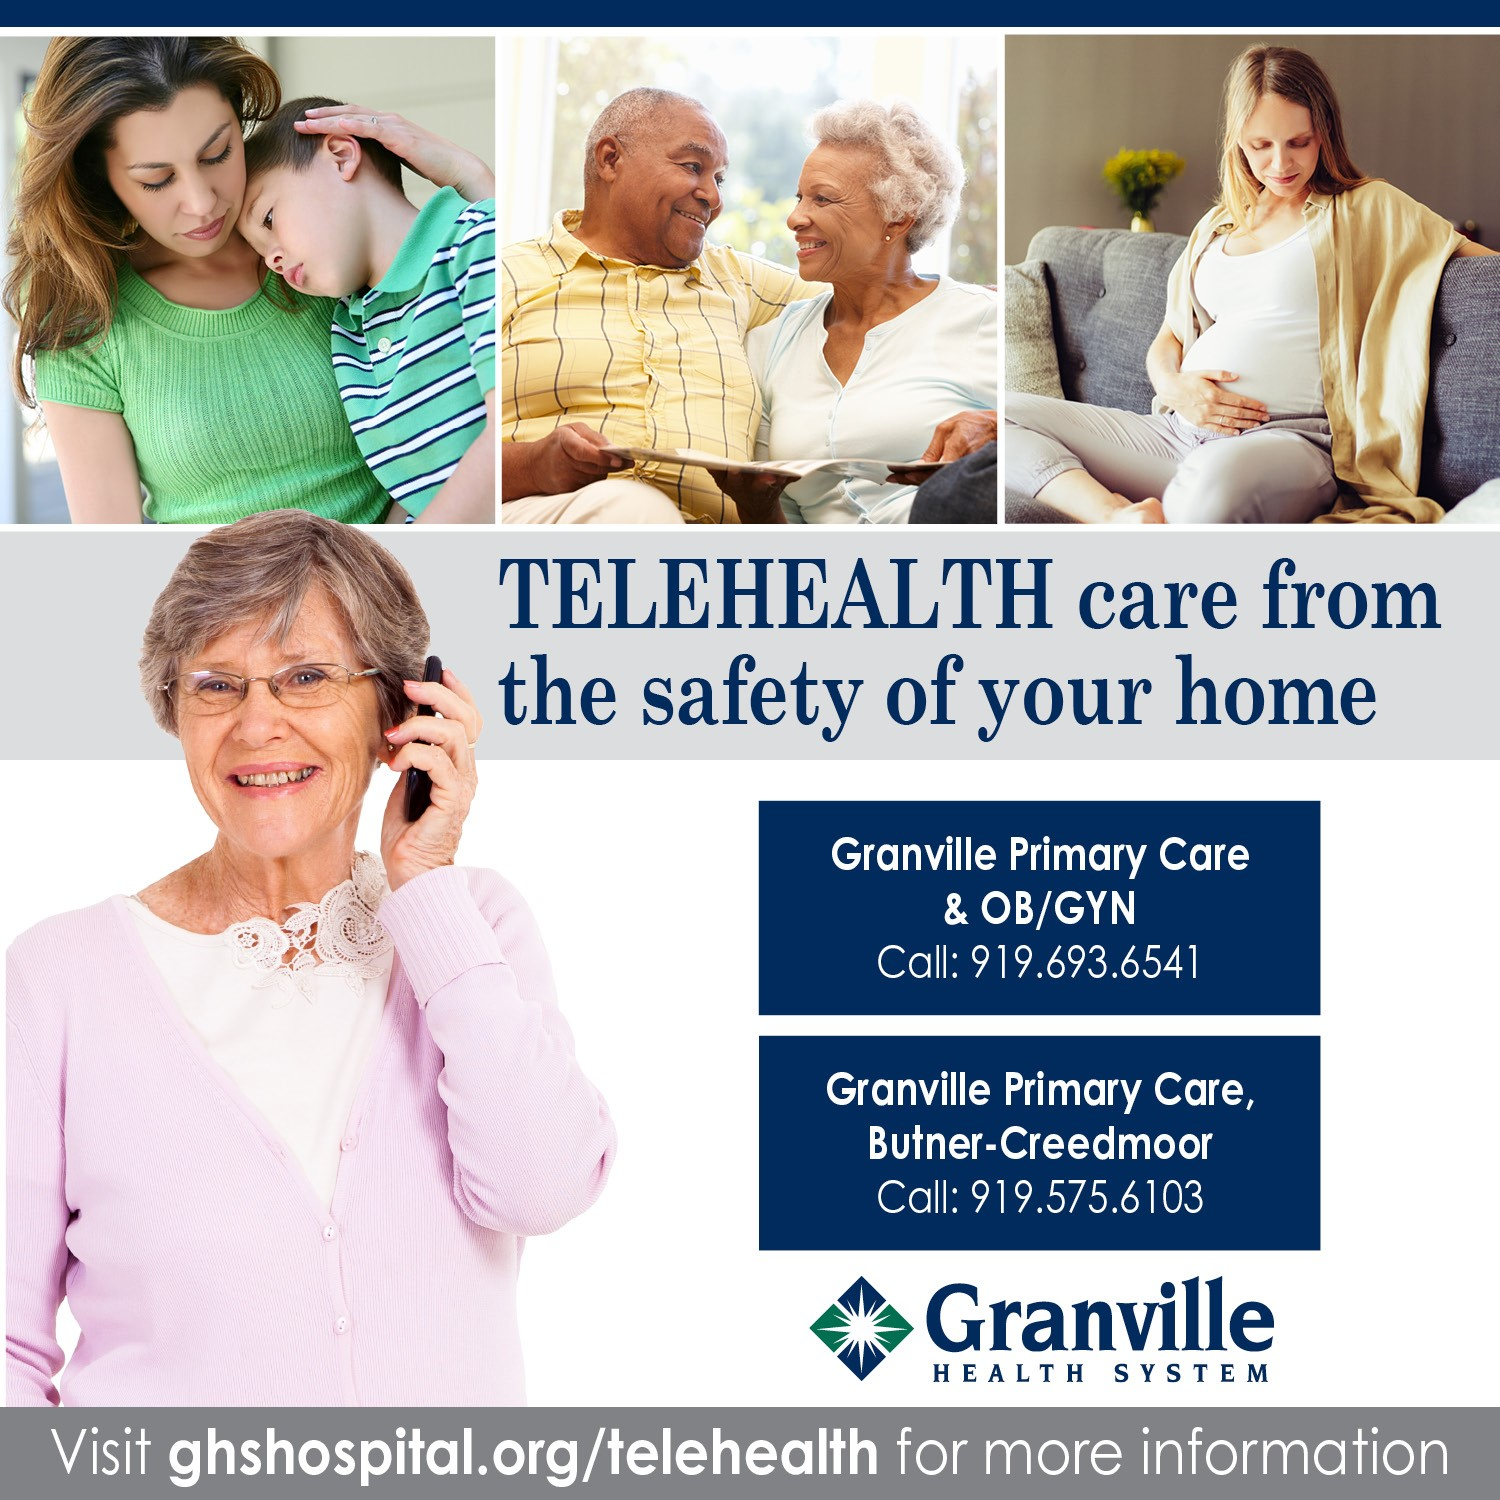 Granville Health System Physician Office Locations Now Offering TELEHEALTH Visits